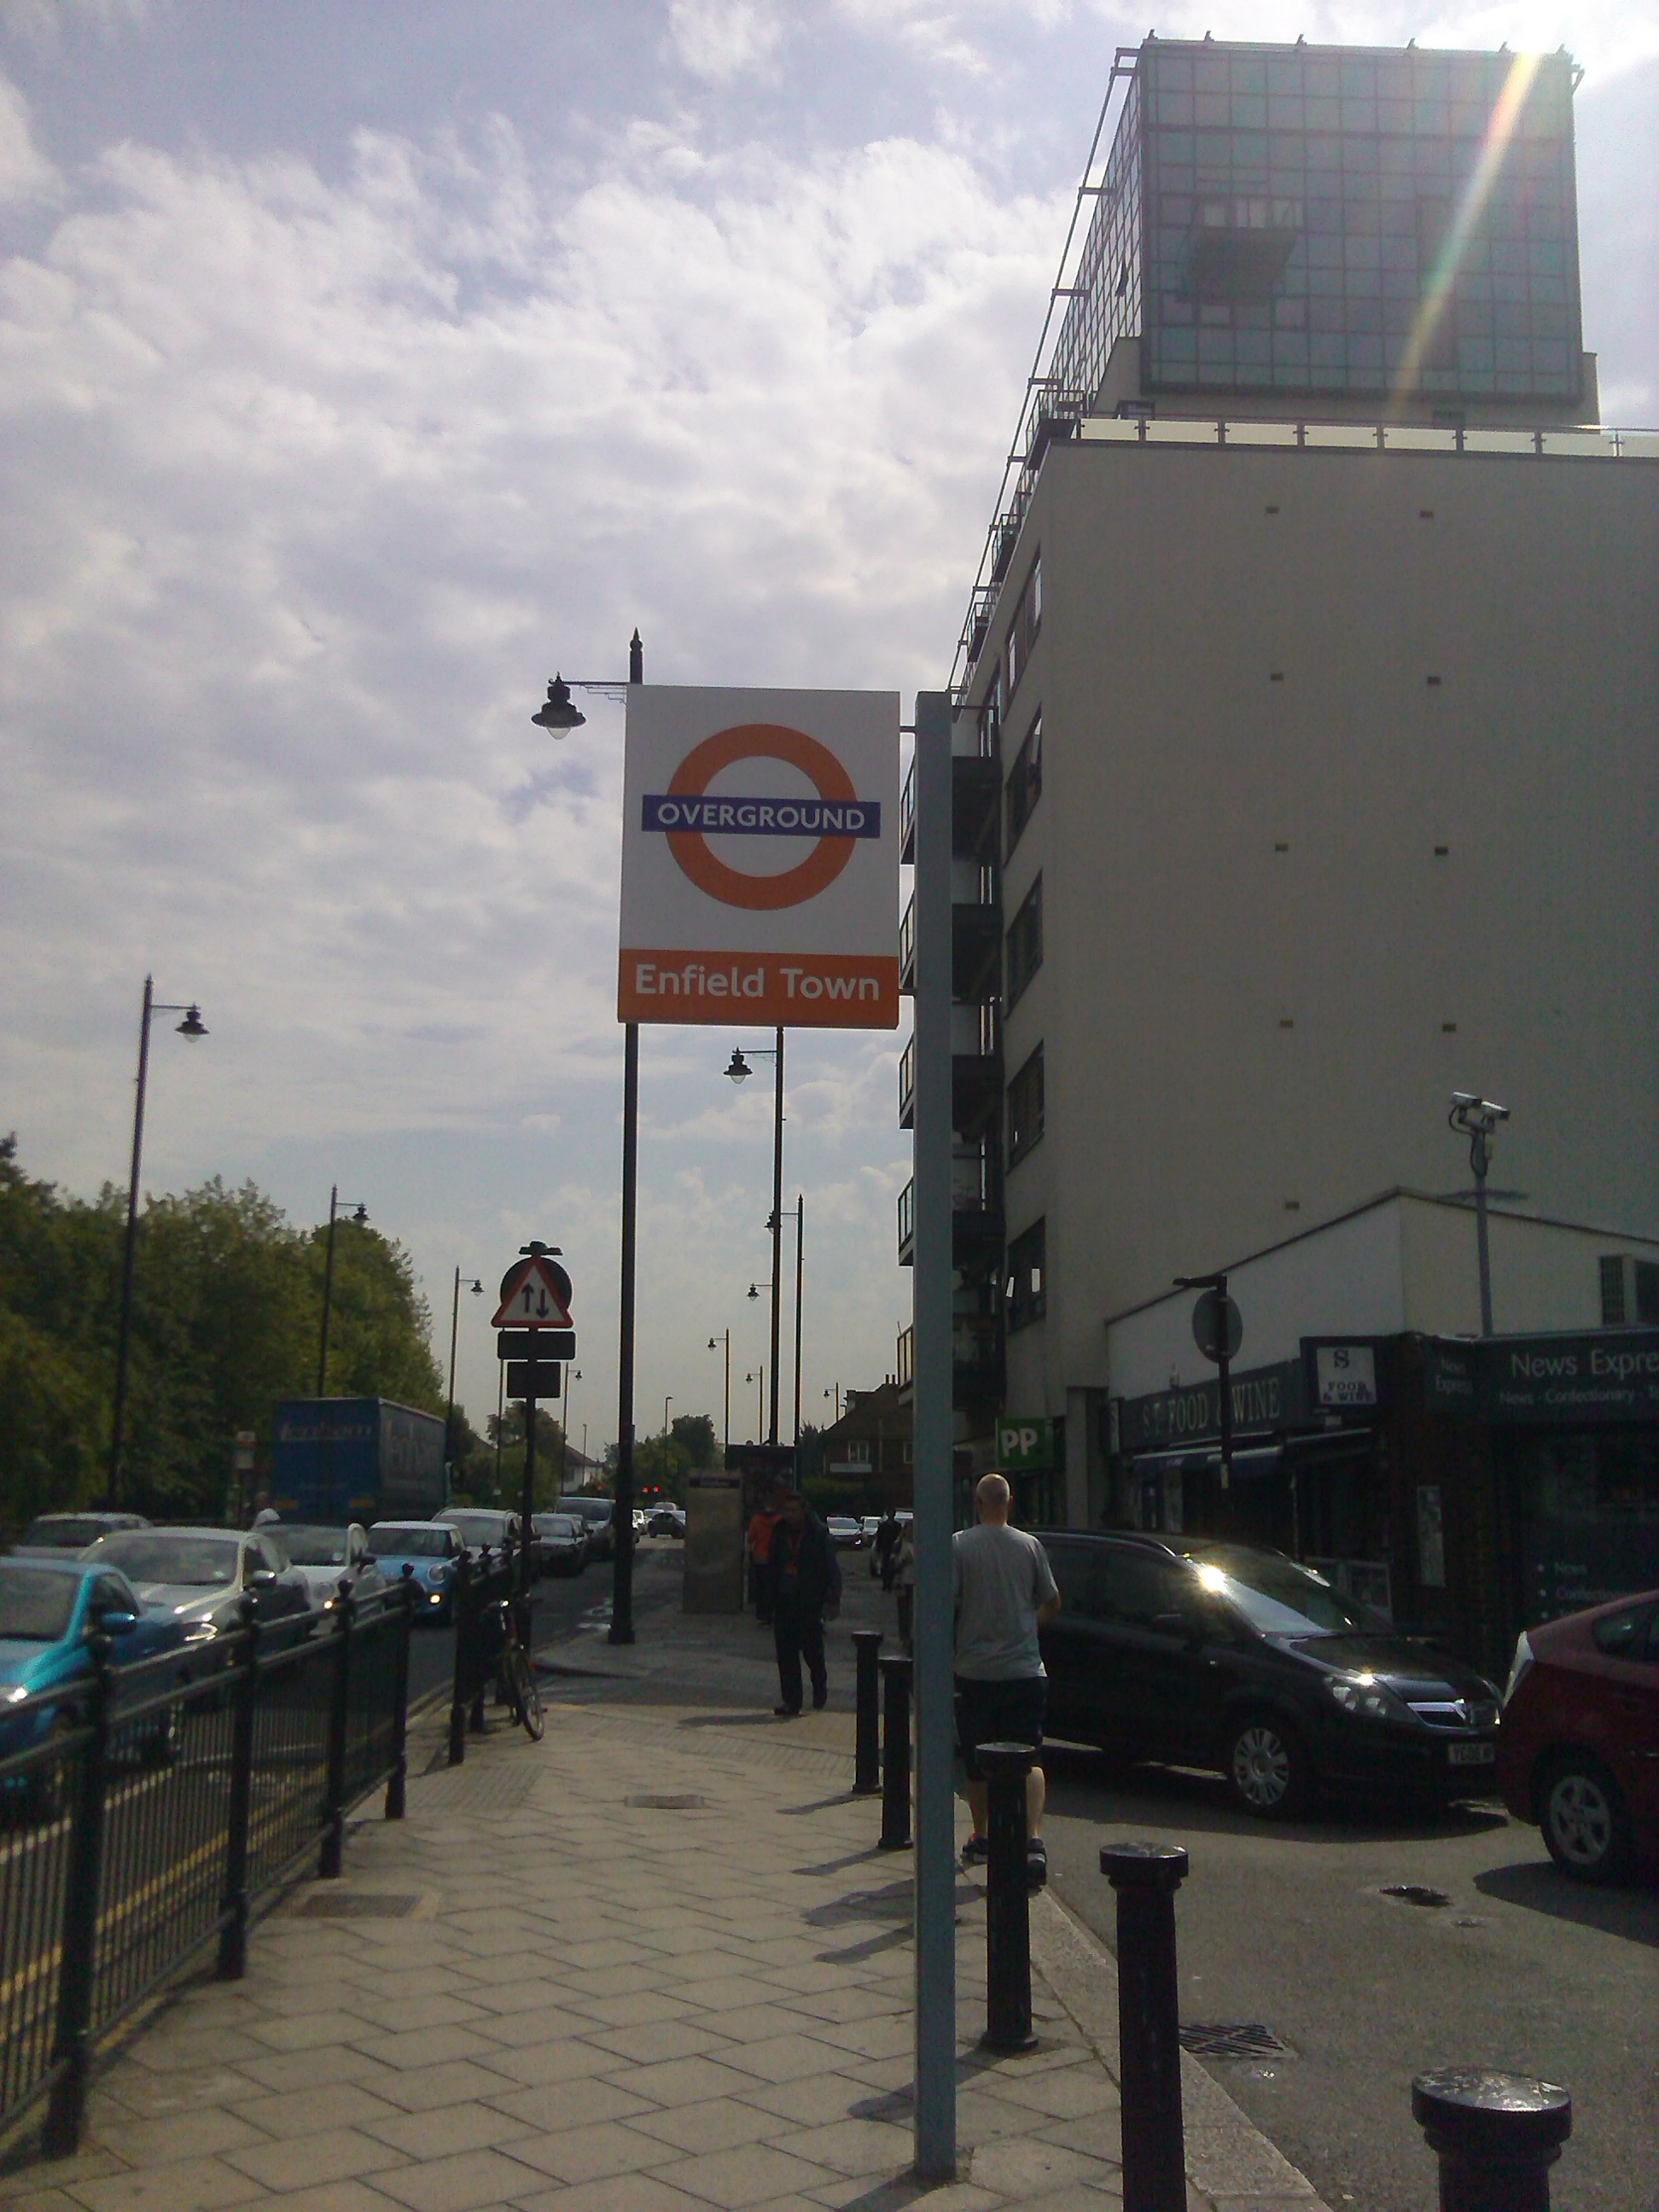 Enfield Town Overground File:exterior Enfield Town